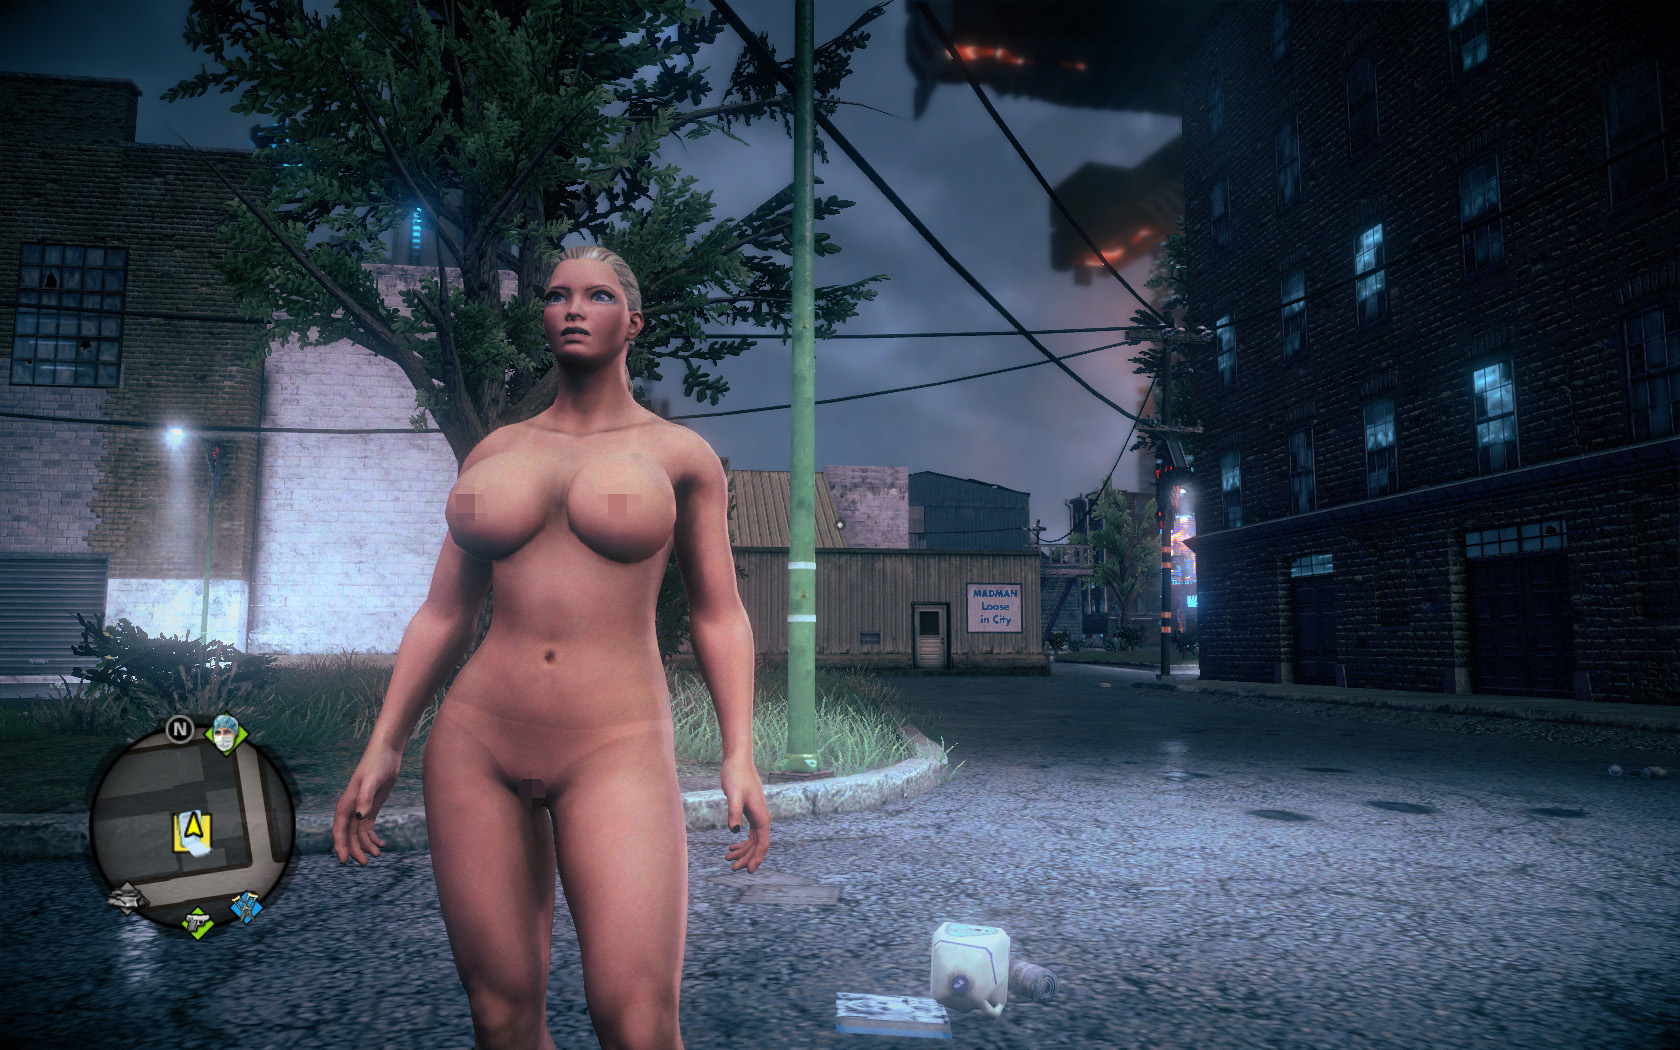 Saints row 2 naked sexual film